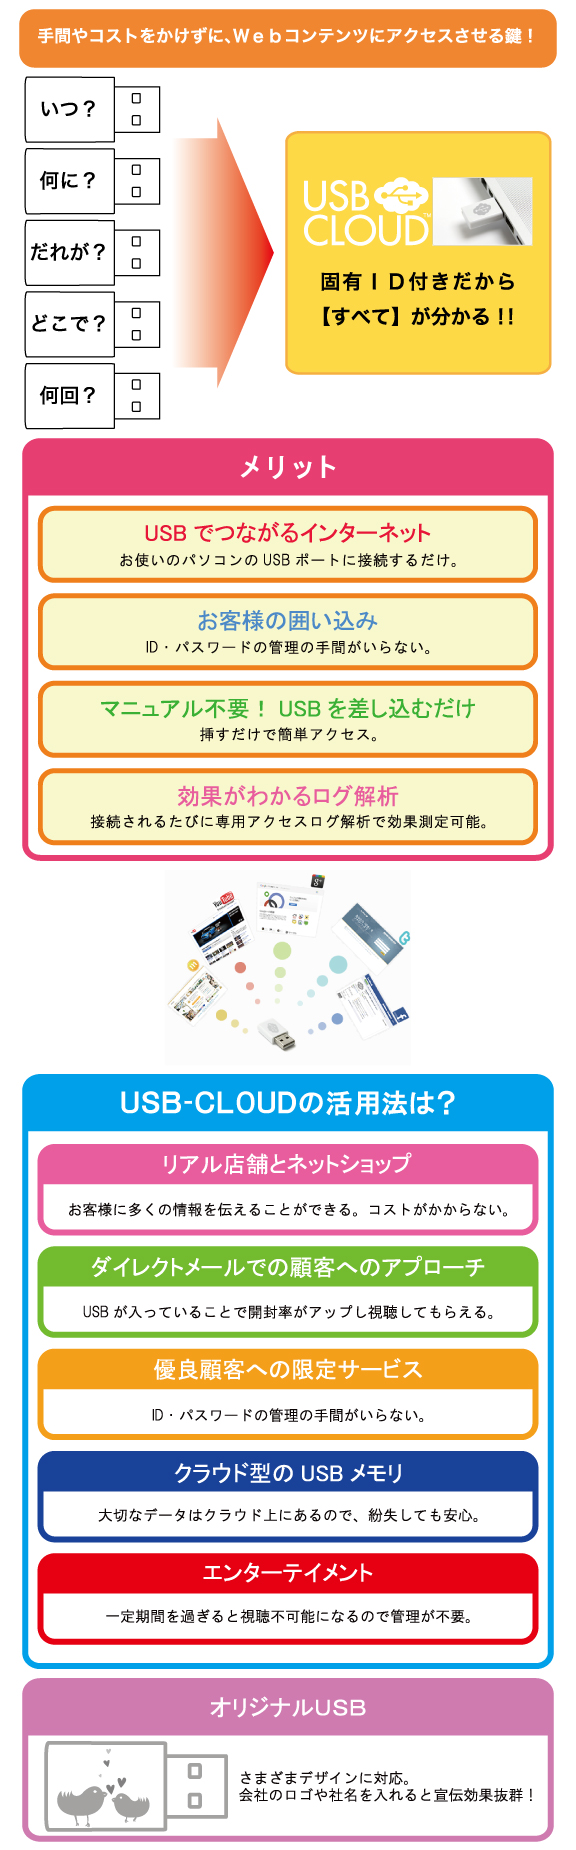 USB-CLOUD